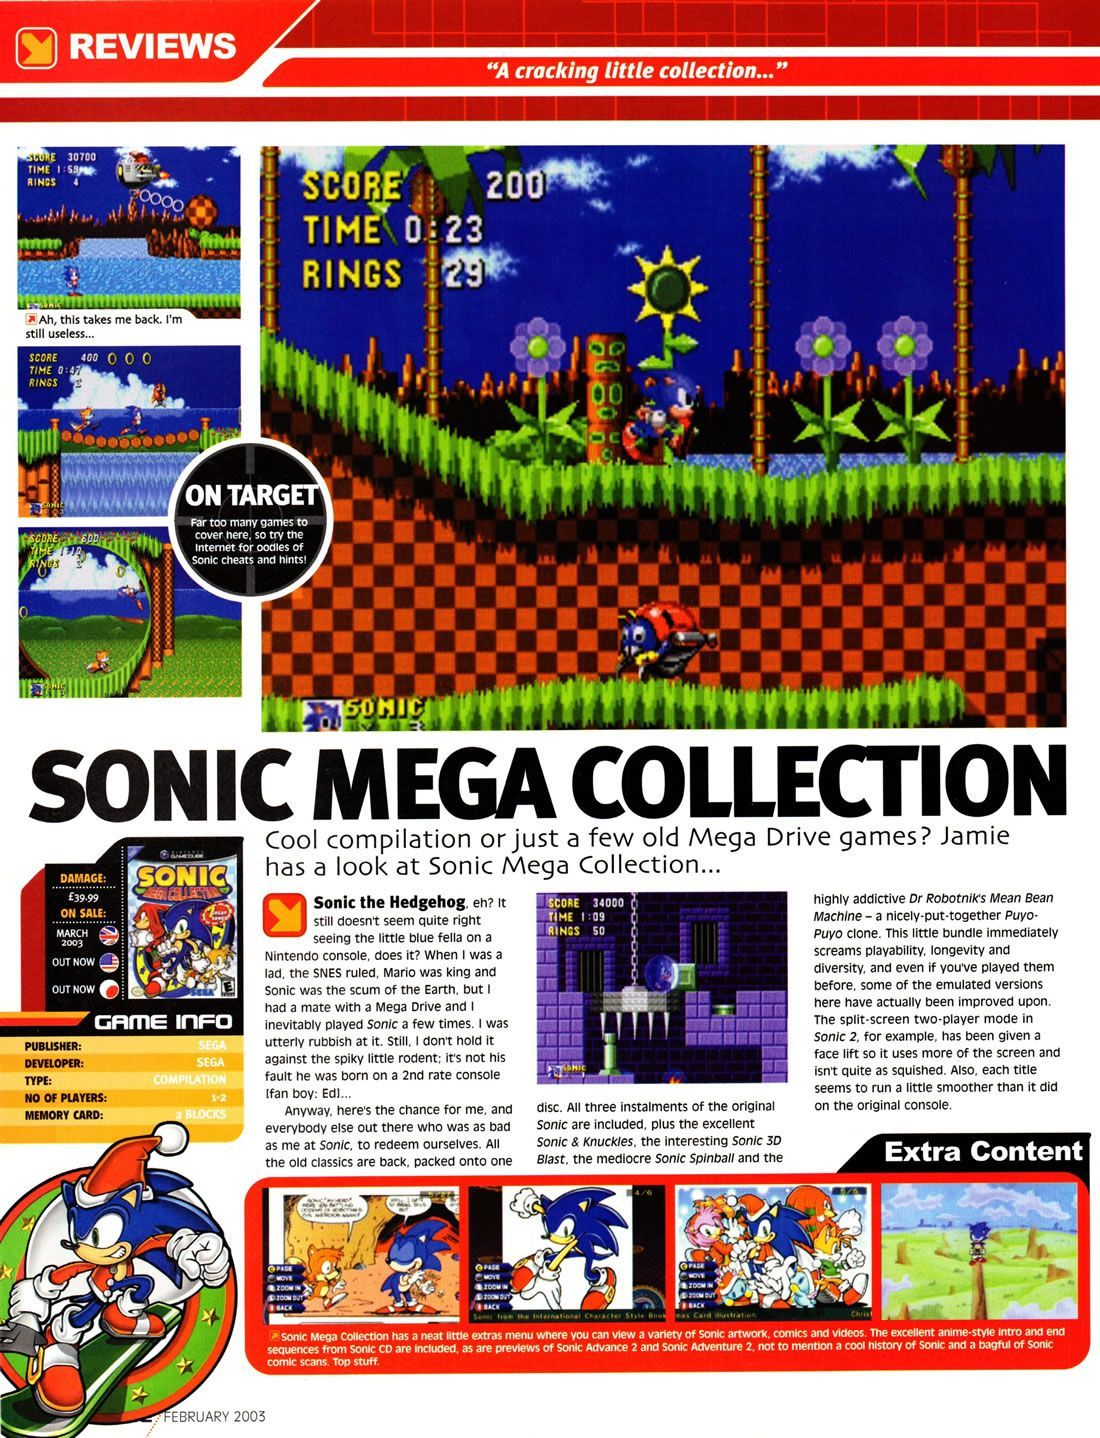 sonic mega collection retro review pg1 from g force magazine issue